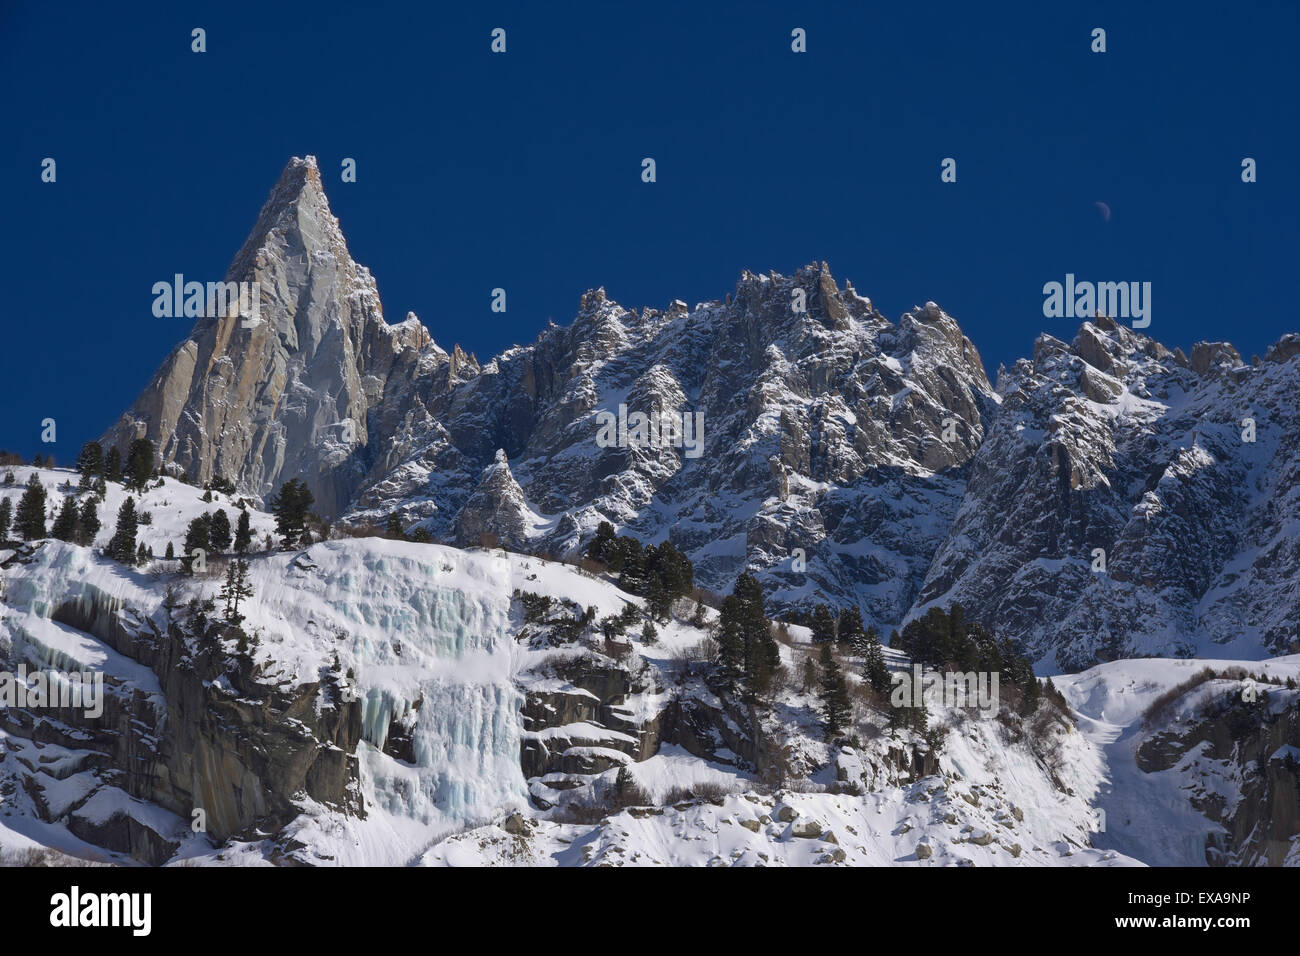 'aiguille du dru' famous  peack of europen alps in a blue sky day - Stock Image